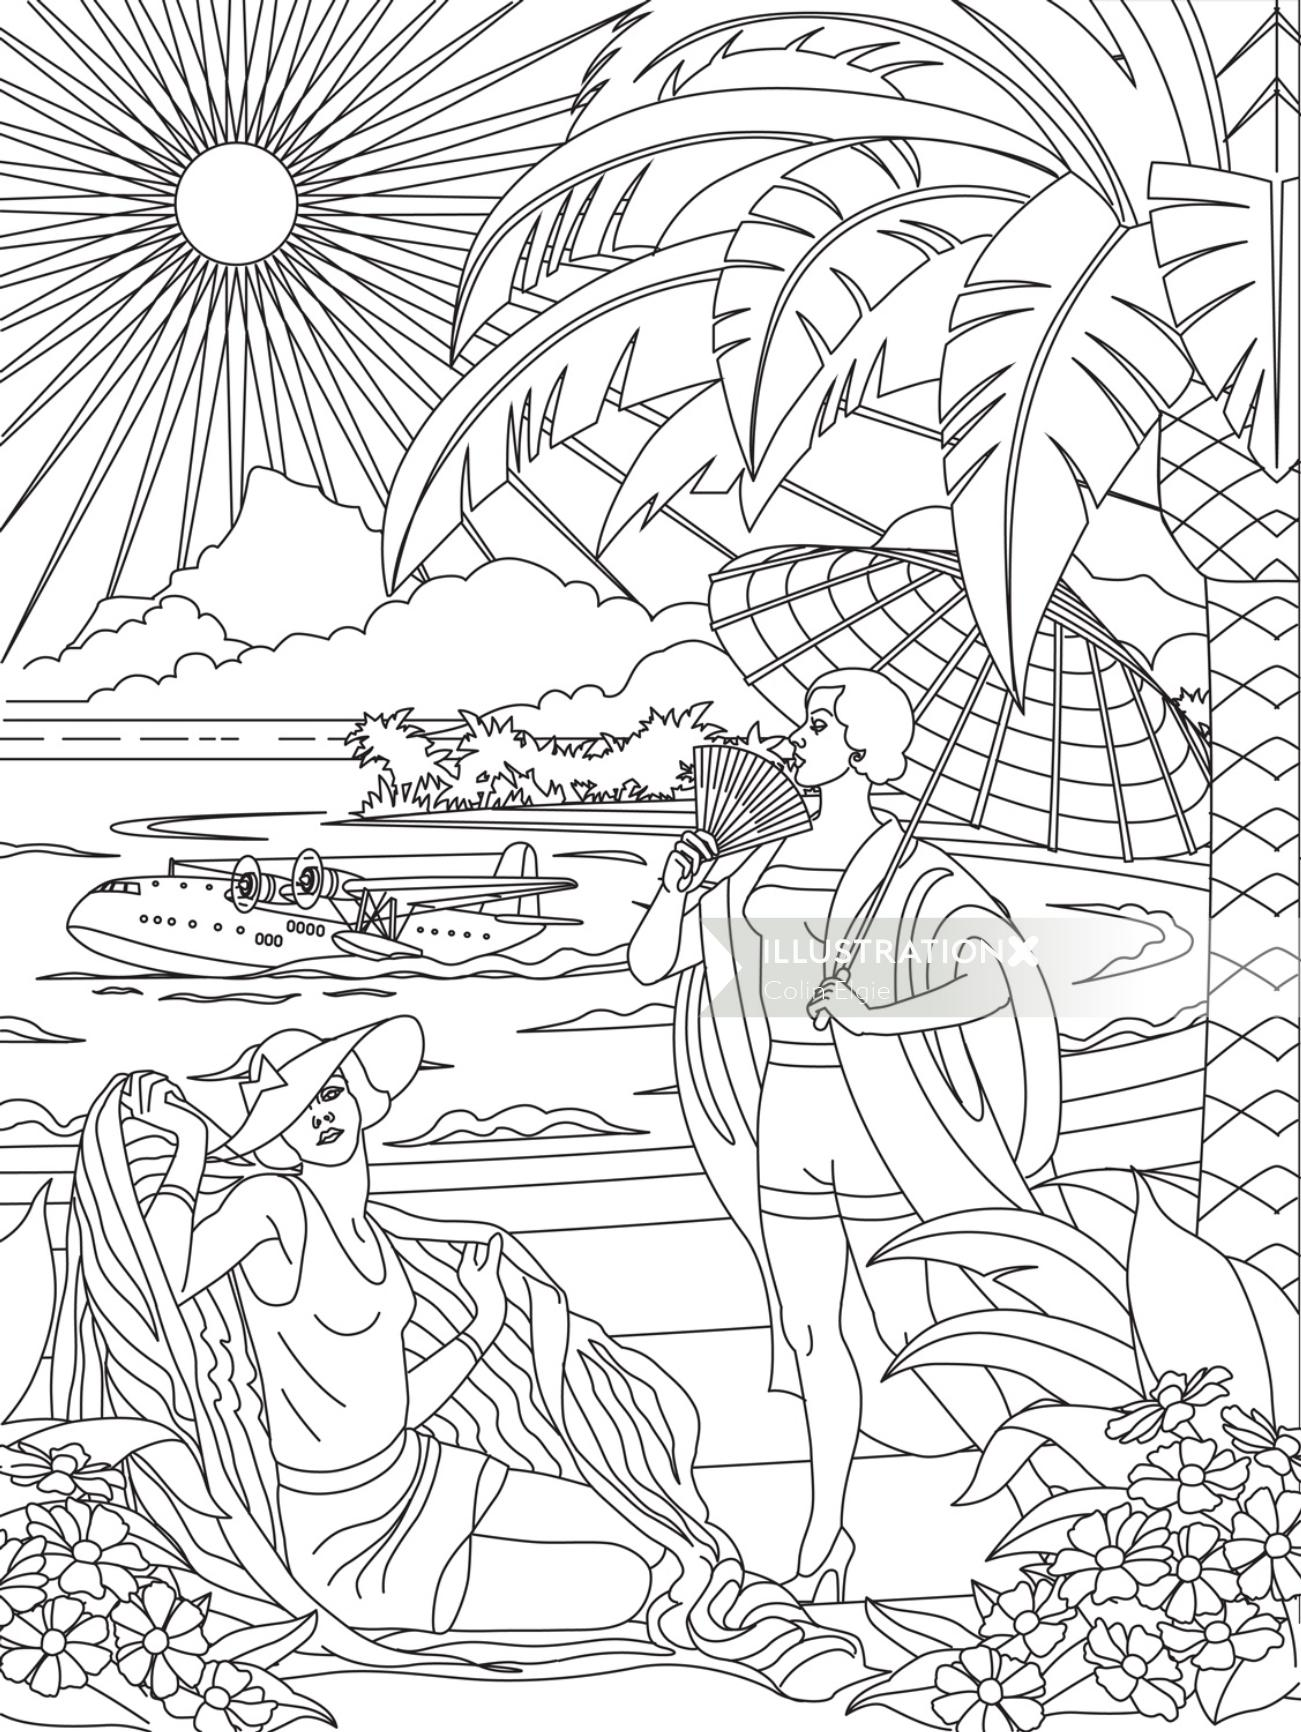 Line drawing of beach scene